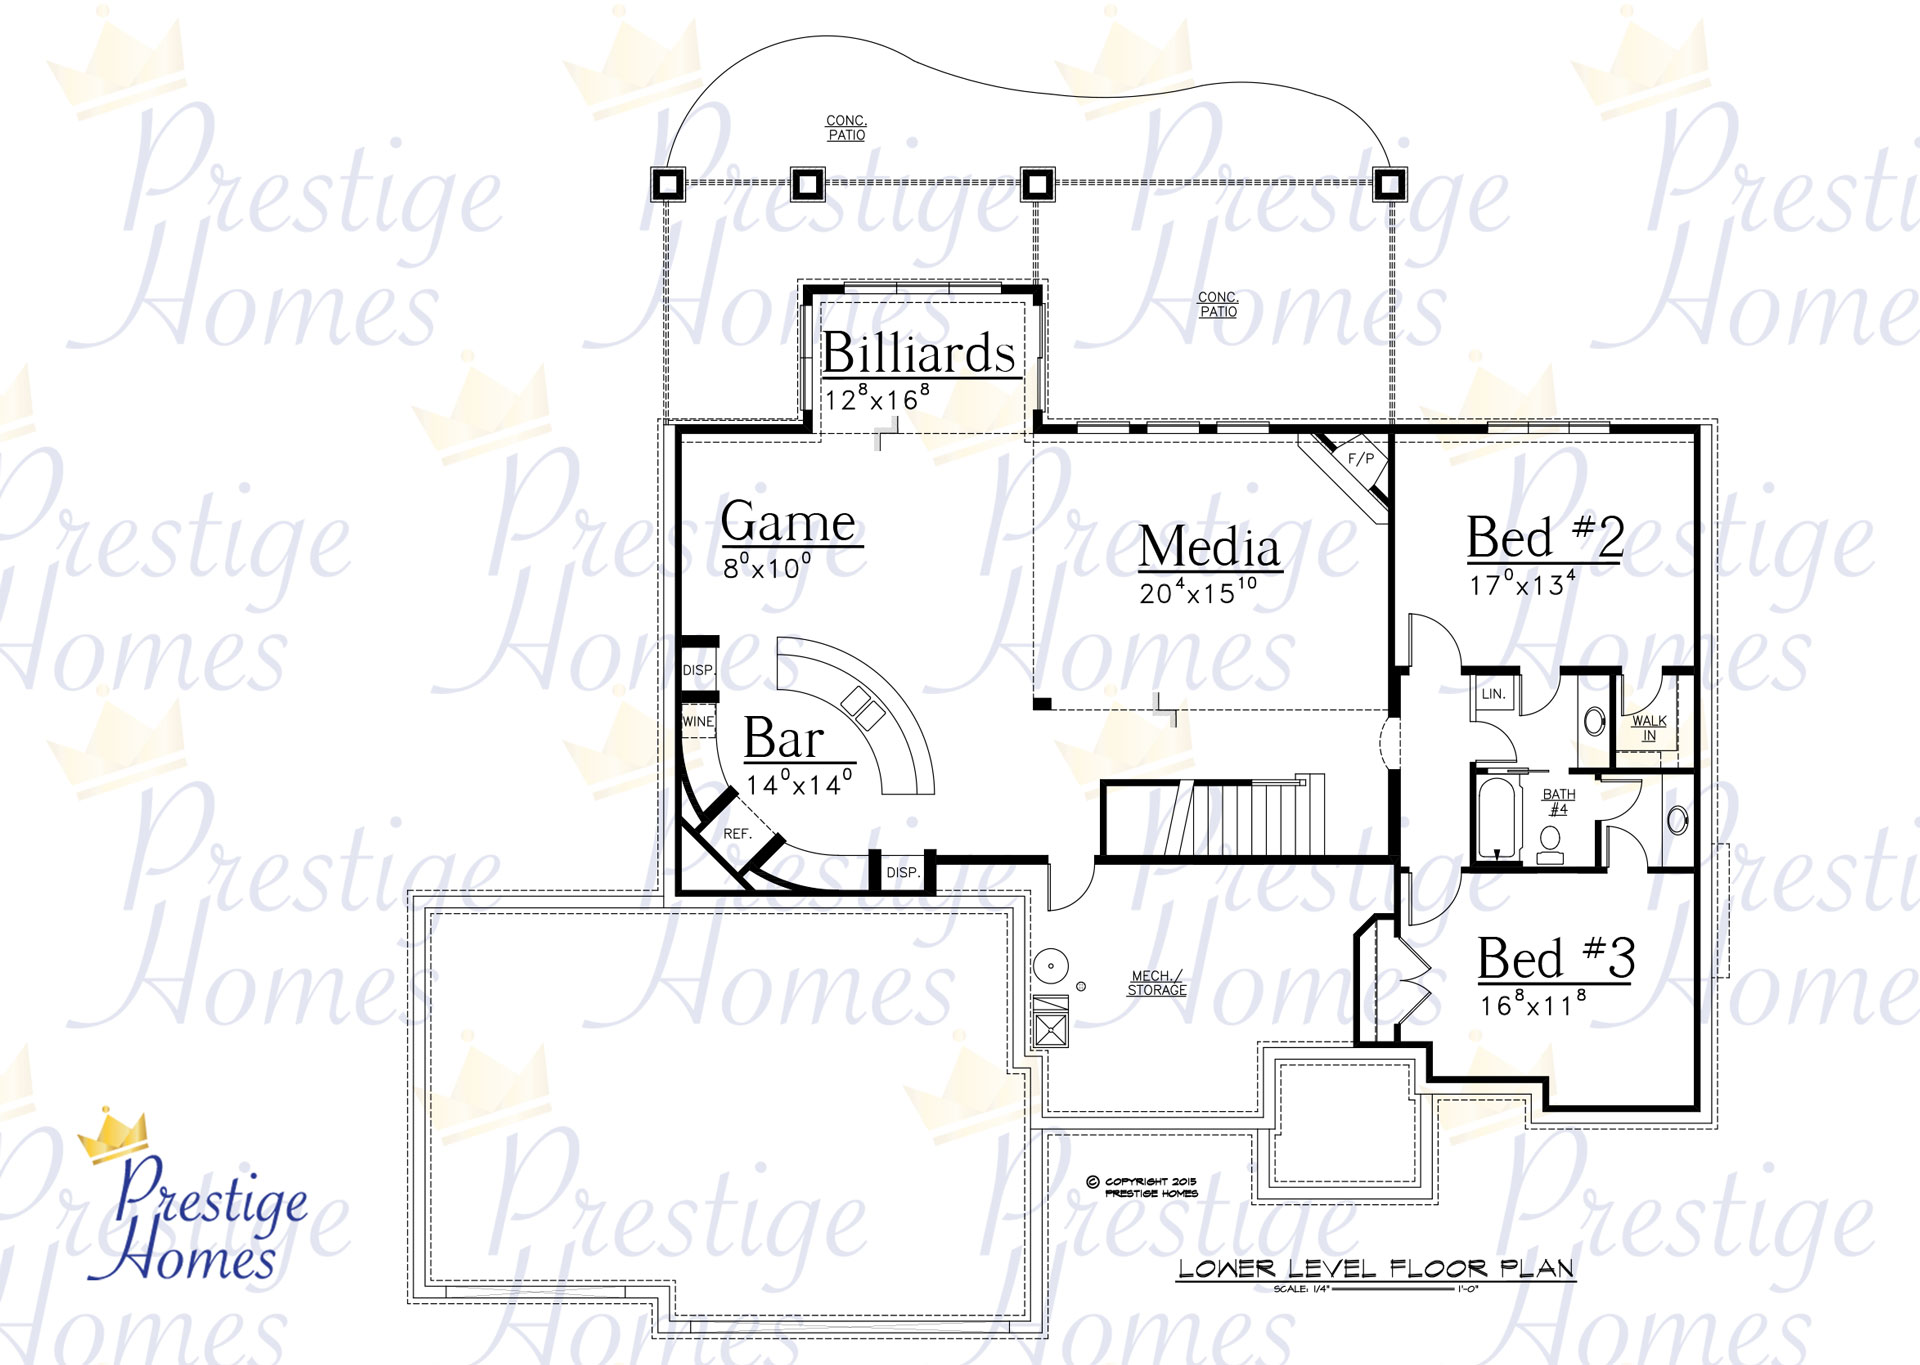 Prestige Homes - Floor Plan - Bella Reduced Footage - Lower